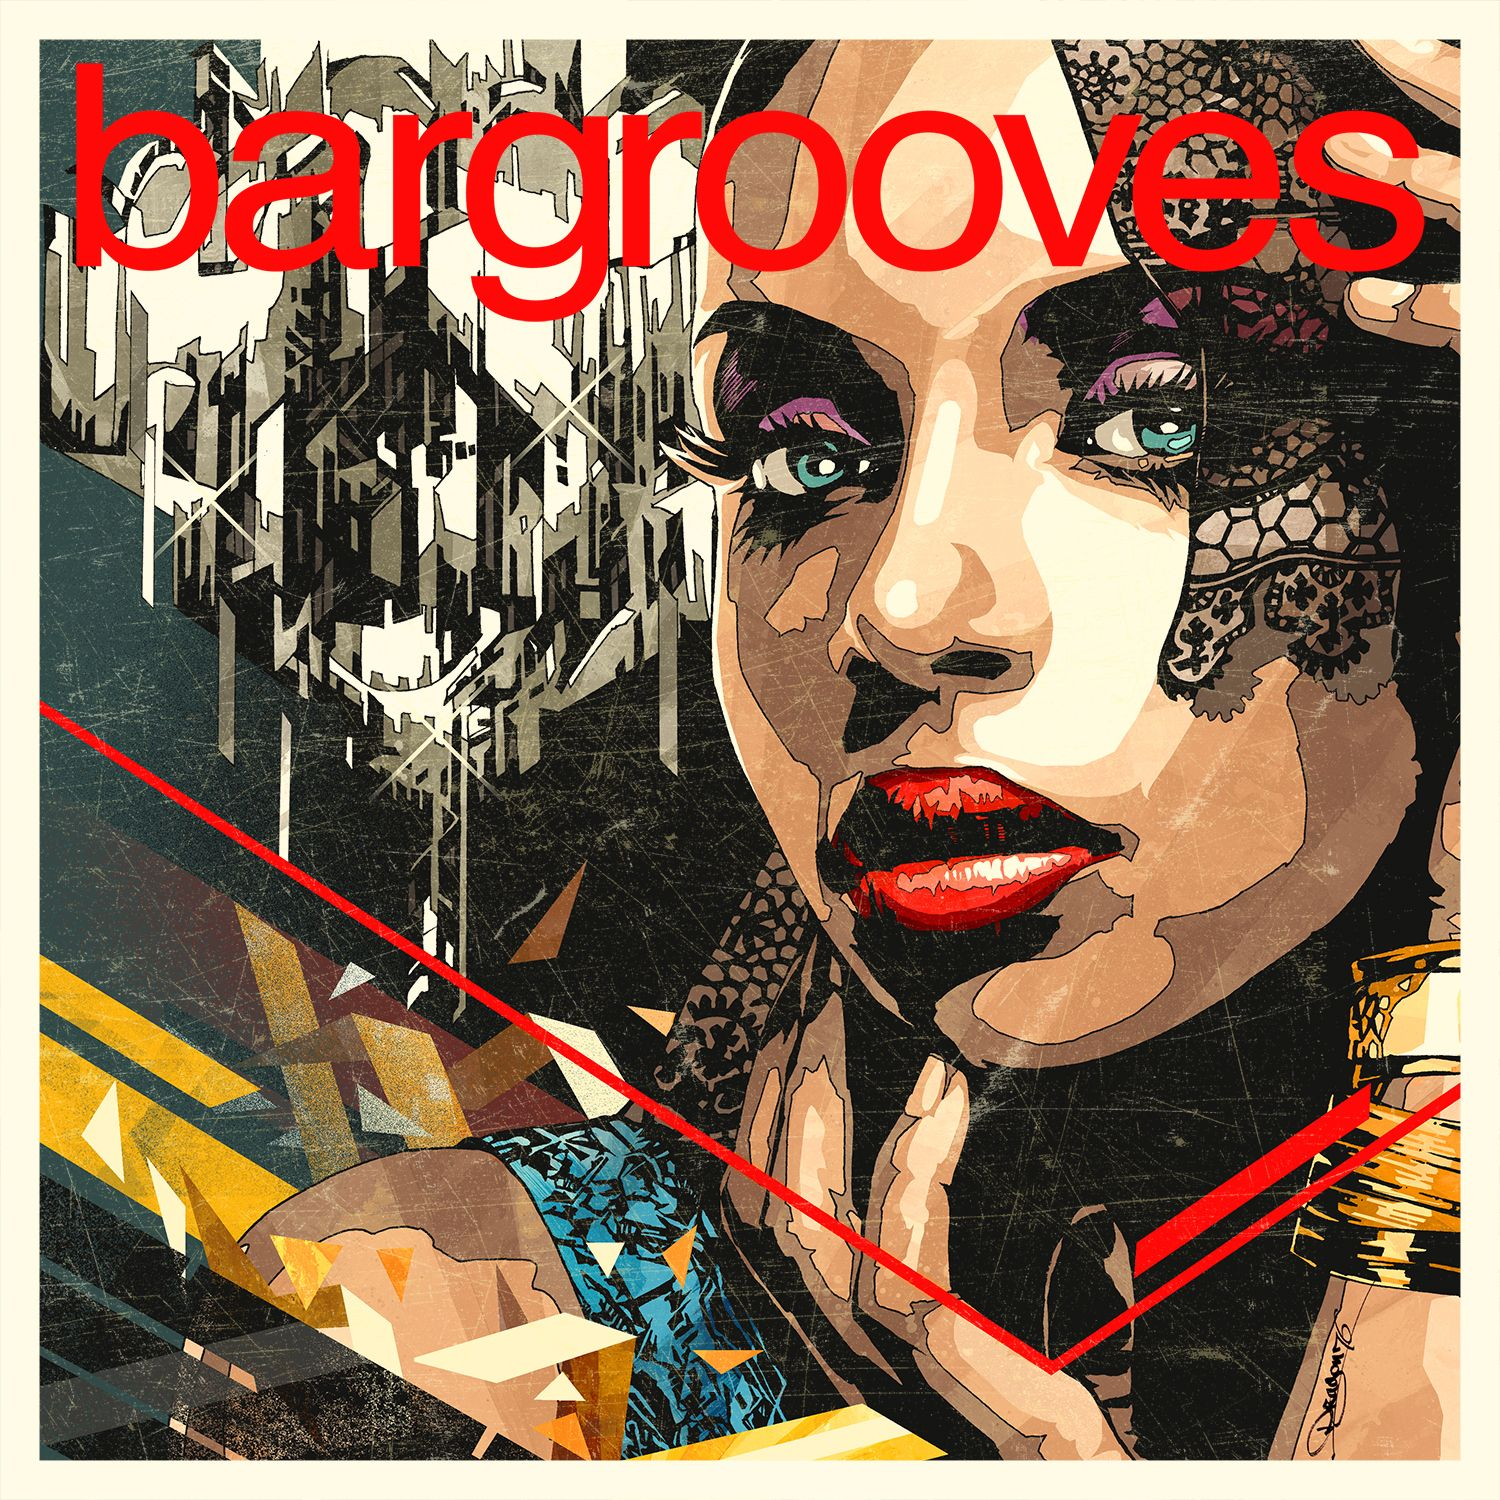 bargrooves_deluxe_edition_2017_1500x1500.jpg